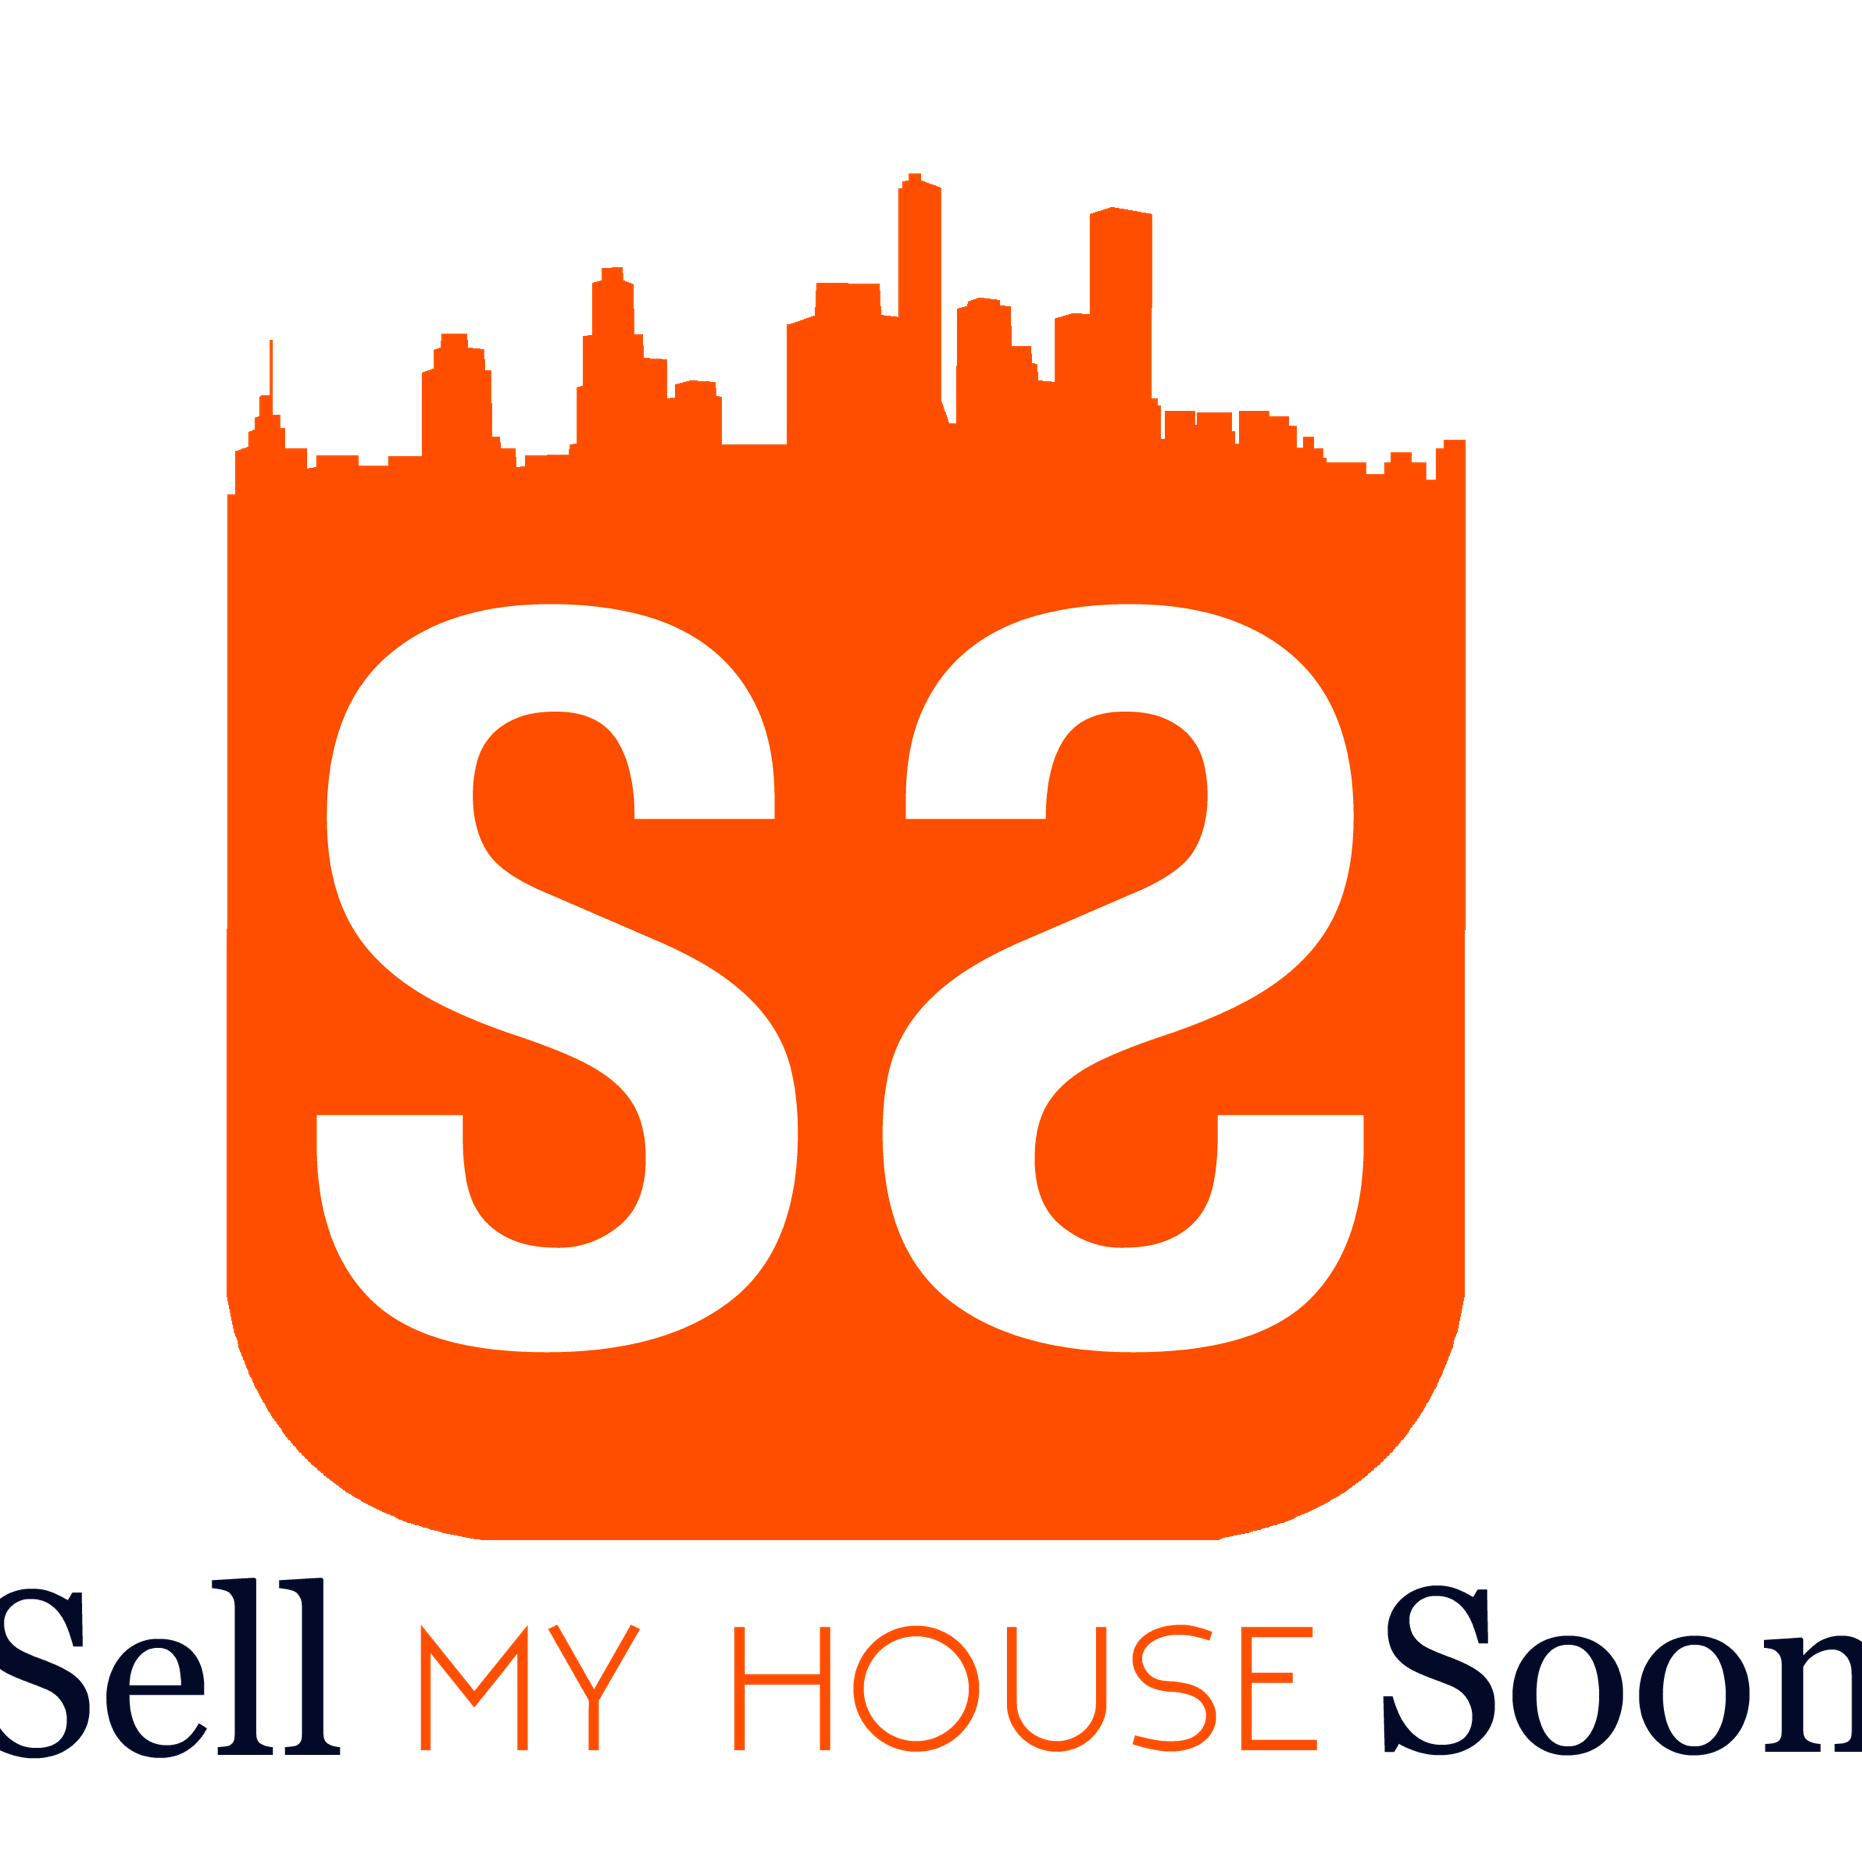 Sell My House Soon image 2